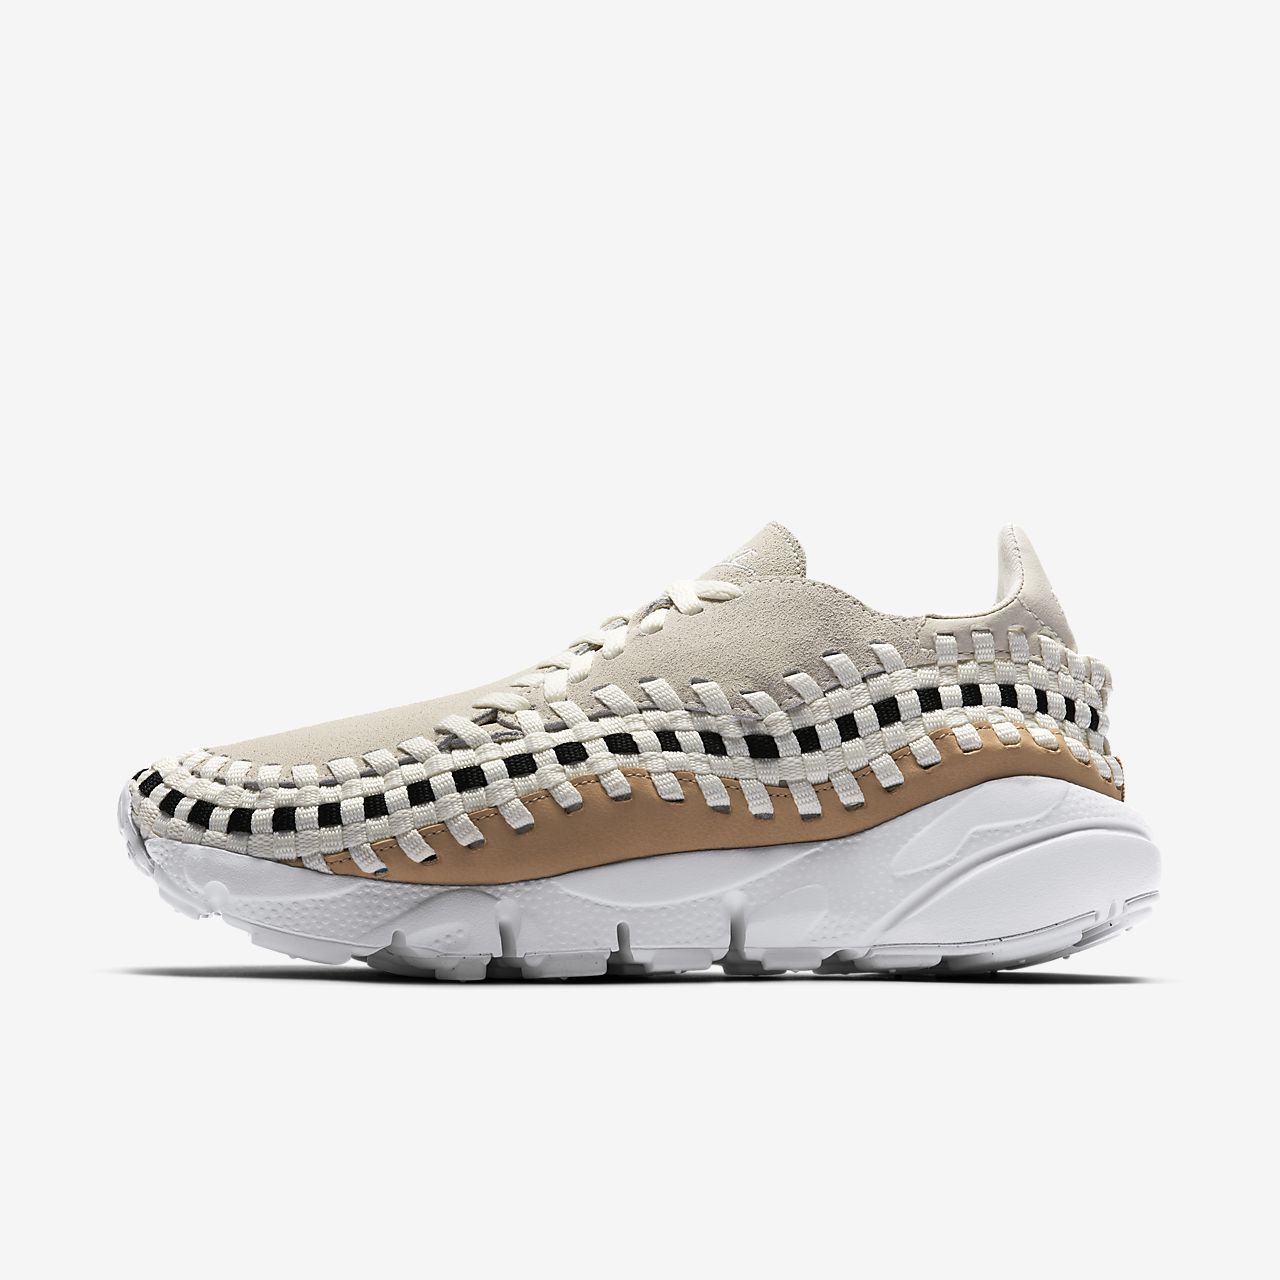 8357cb8348 ... chukka freemotion 3hc pack 49eb4 a9f32; where can i buy nike air  footscape woven womens shoe d2e19 85f33